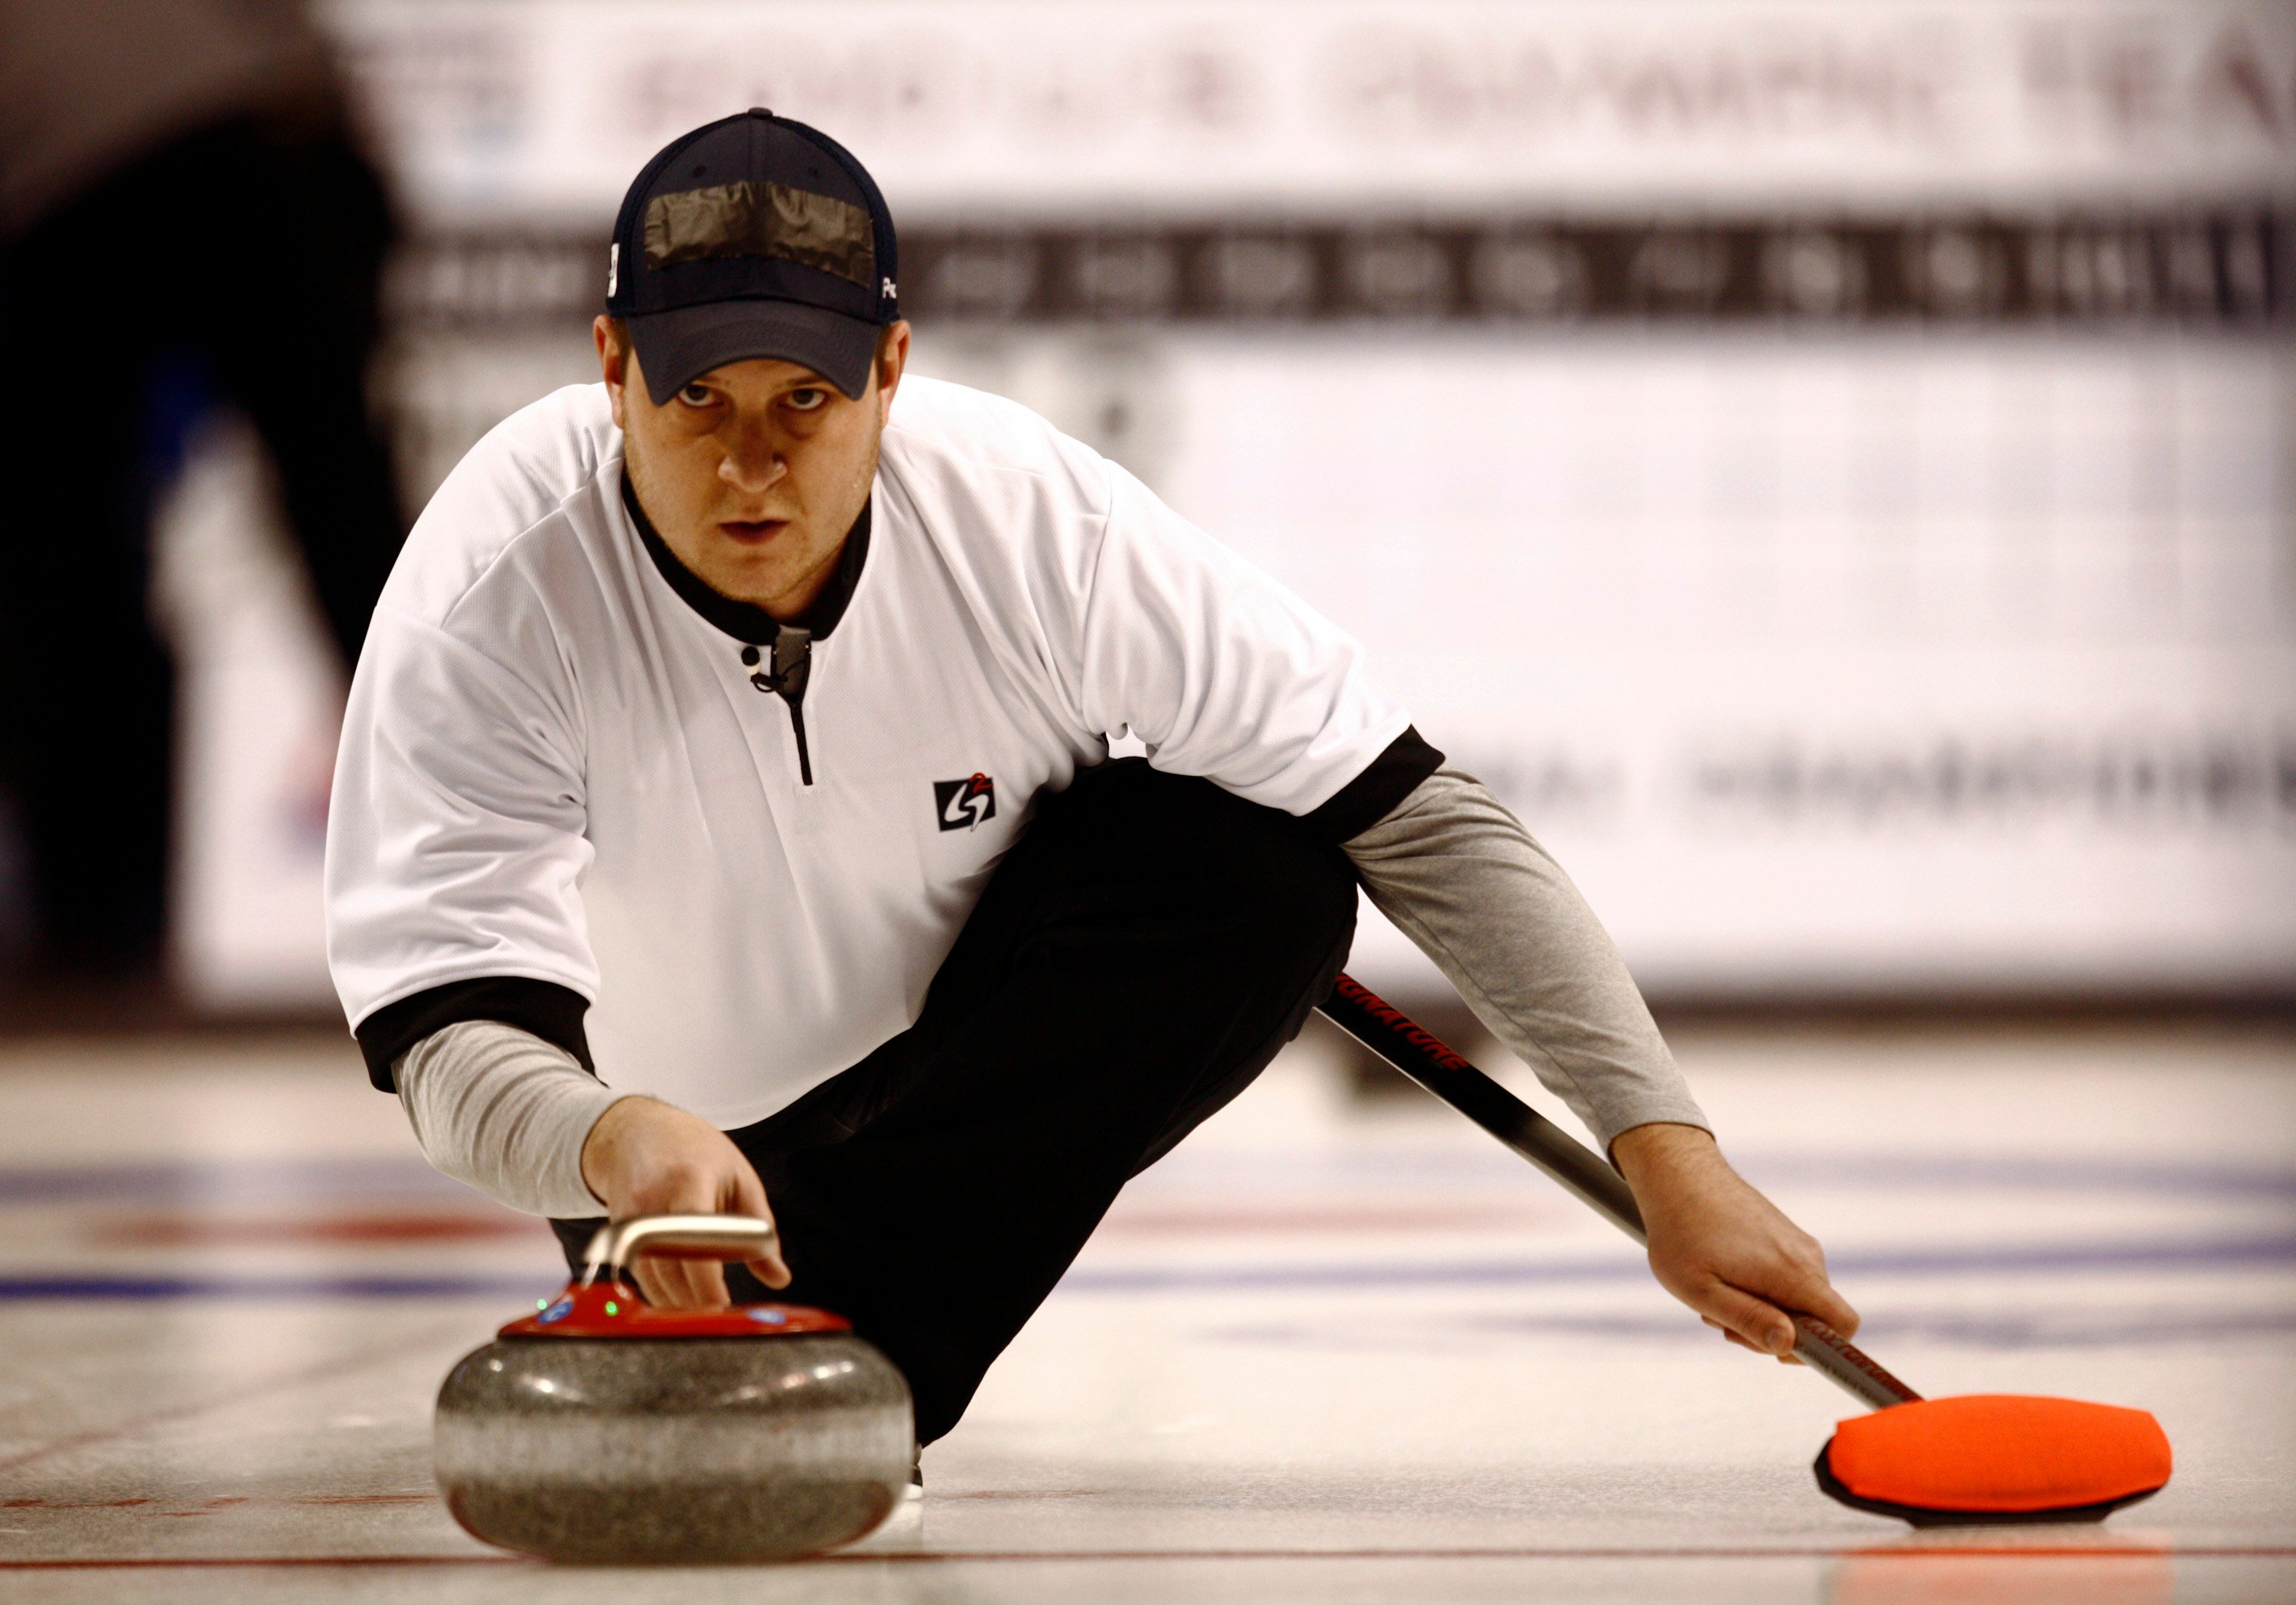 Skip John Schuster of Duluth, Mn., thorws a stone in the mens final at the U.S. Curling Trials. Schuster and his three teammates won gold in the 2018 Winter Olympics. (AP Photo/David Zalubowski)